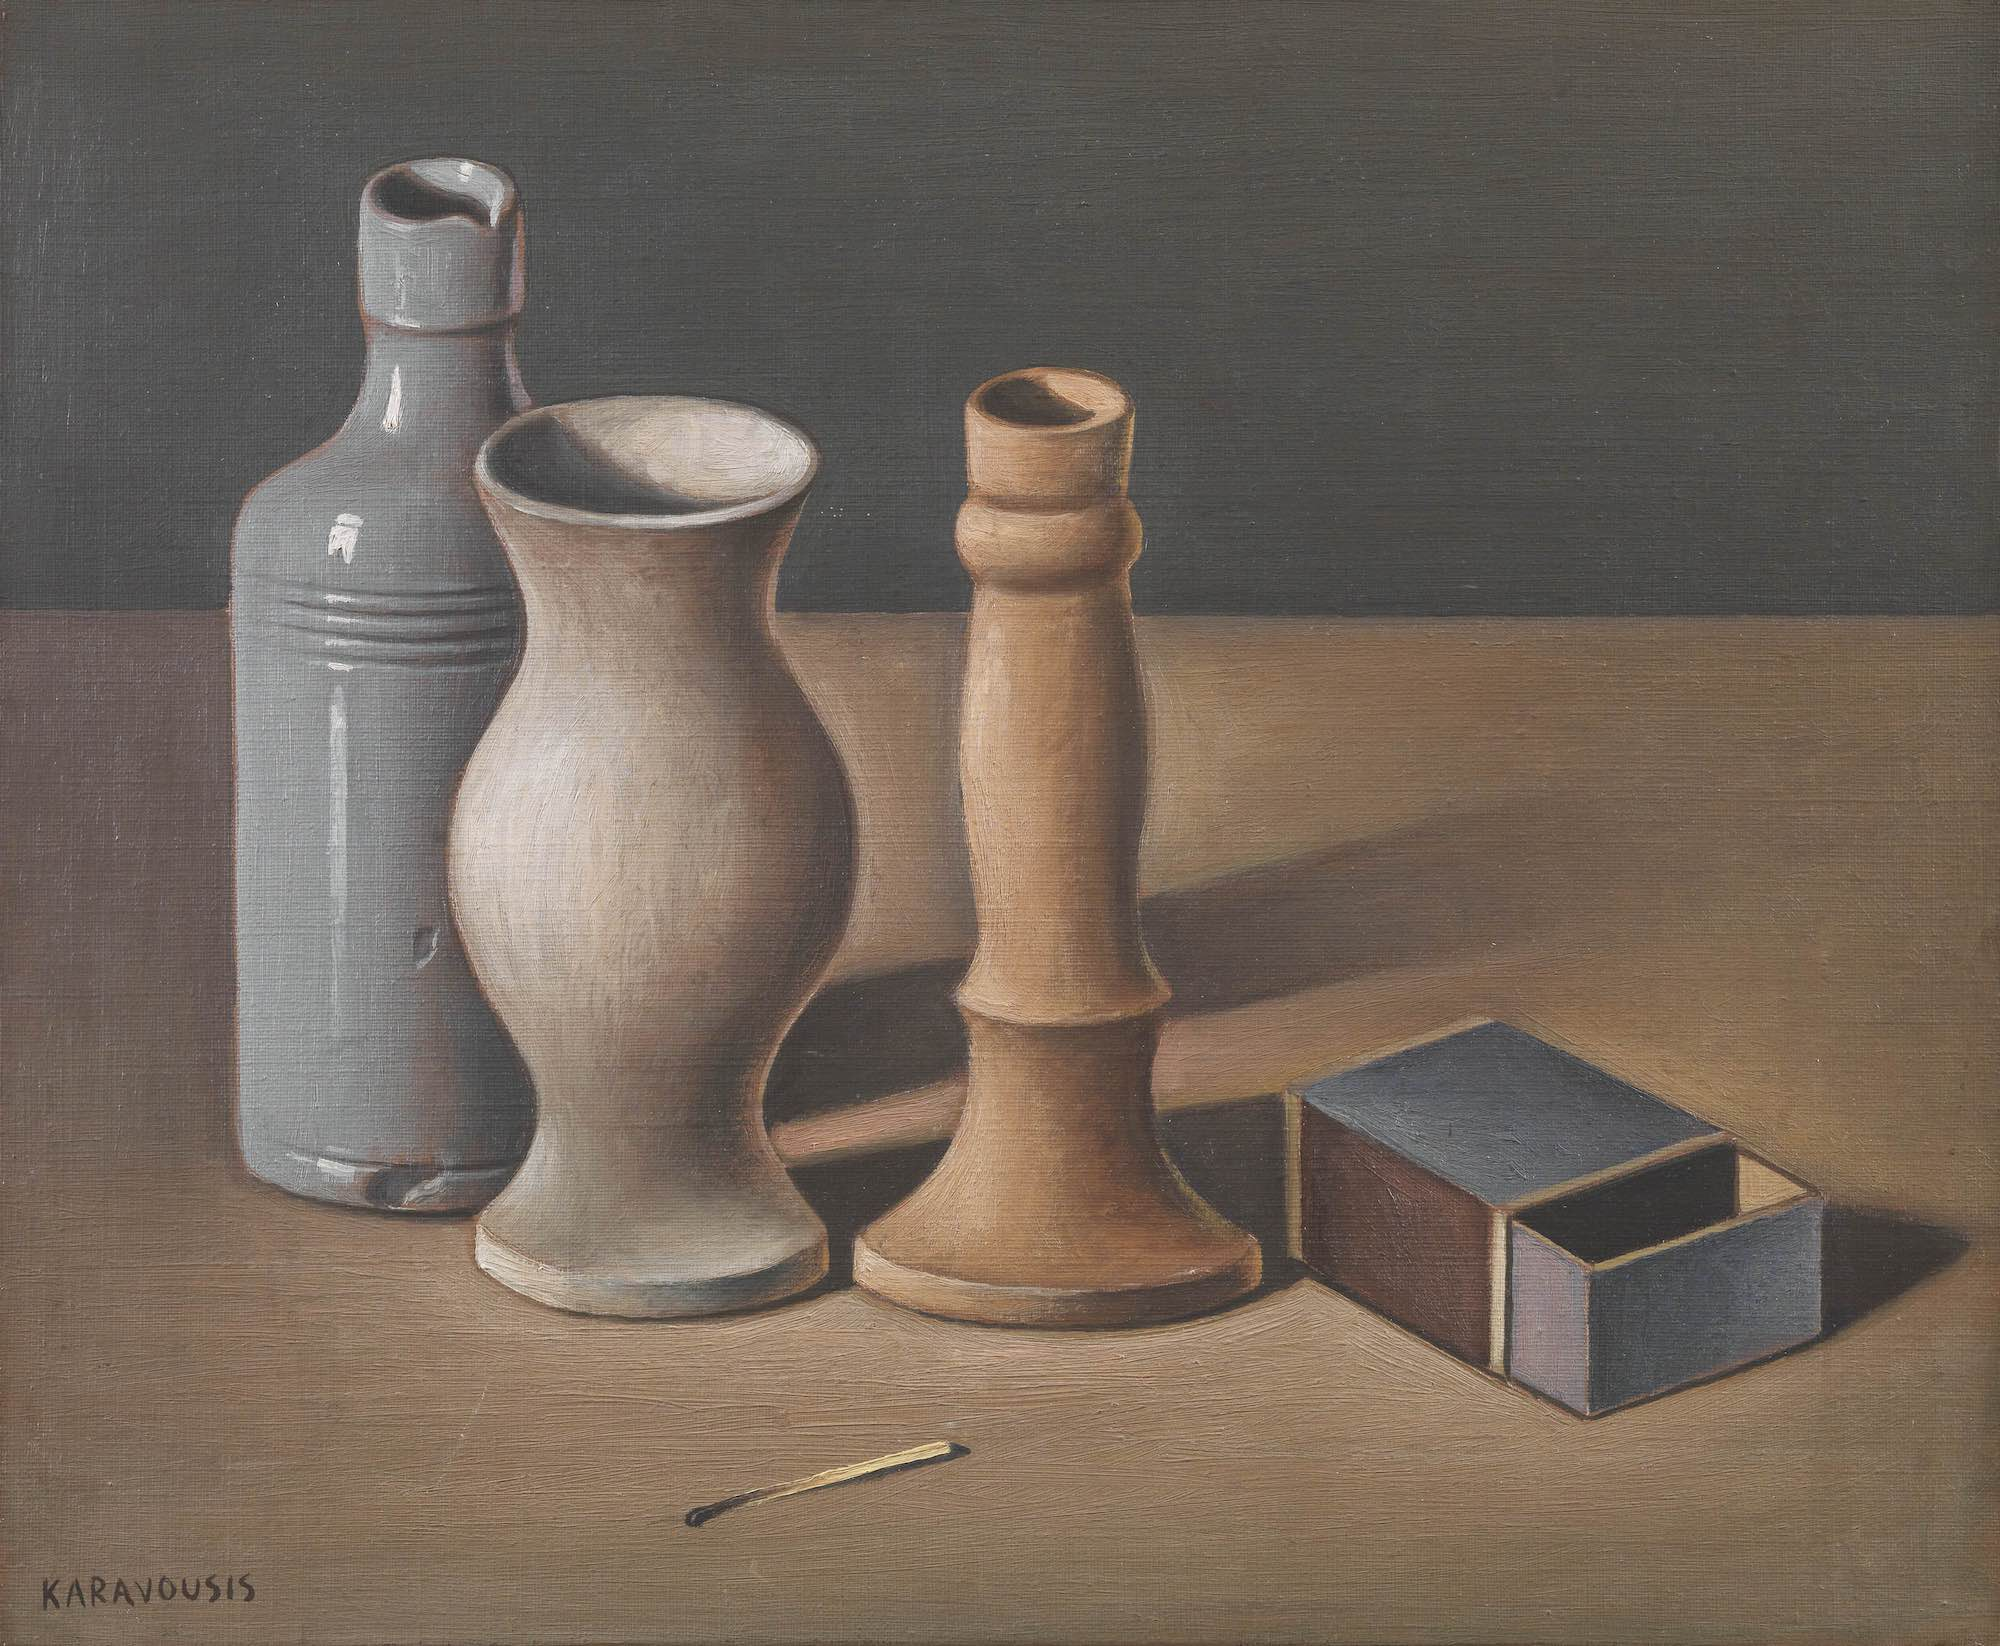 Lot 14 Sarandis KARAVOUSIS | Still life with matchbox